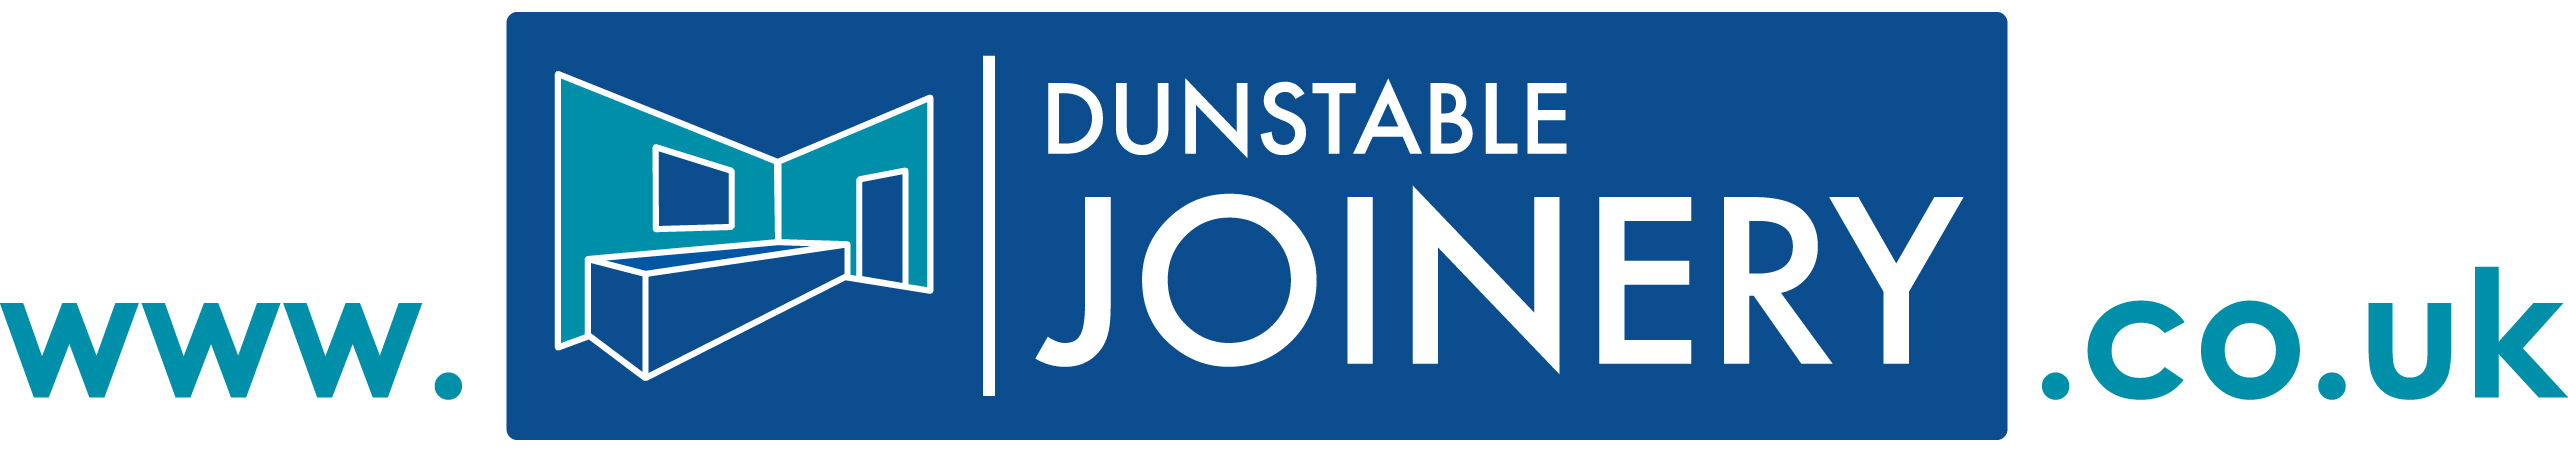 Dunstable Joinery logo